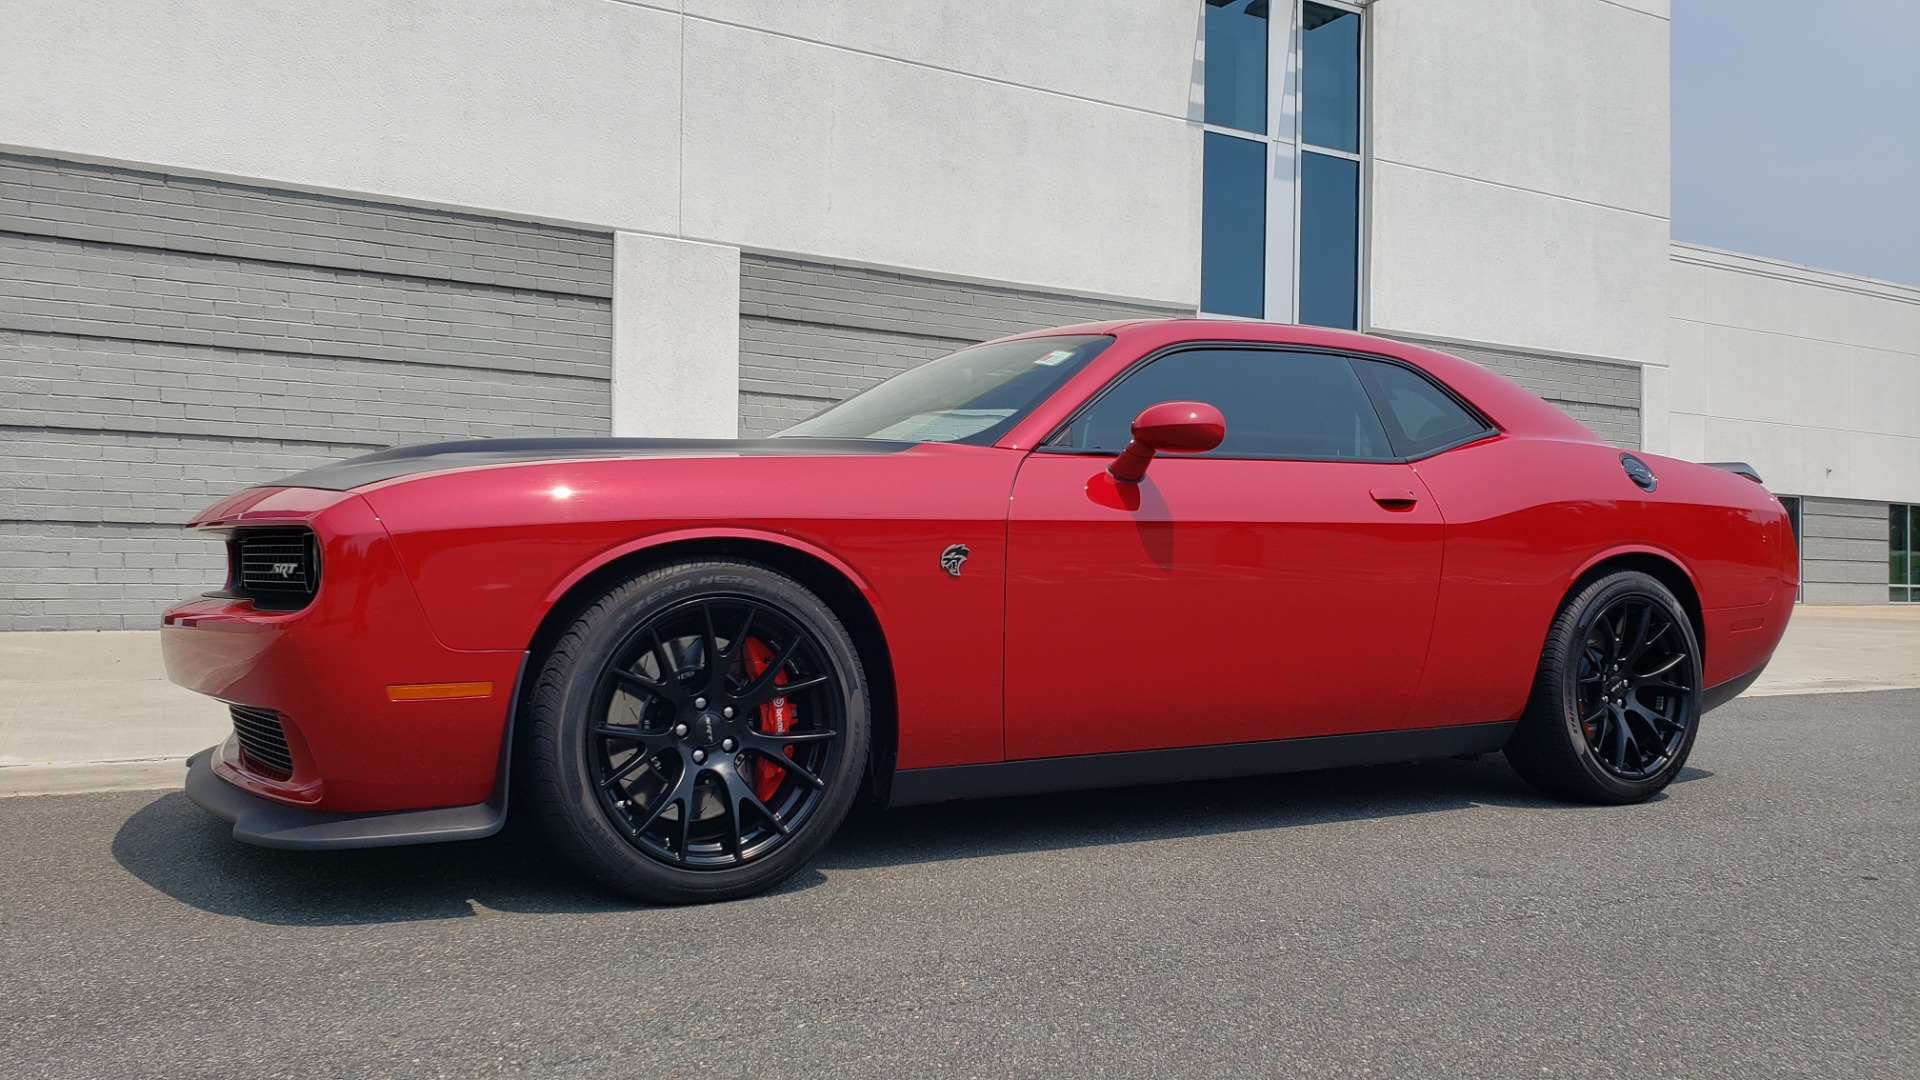 Used 2016 Dodge CHALLENGER SRT HELLCAT 707HP COUPE / AUTO / NAV / SUNROOF / H/K SND / REARVIEW for sale $60,995 at Formula Imports in Charlotte NC 28227 4